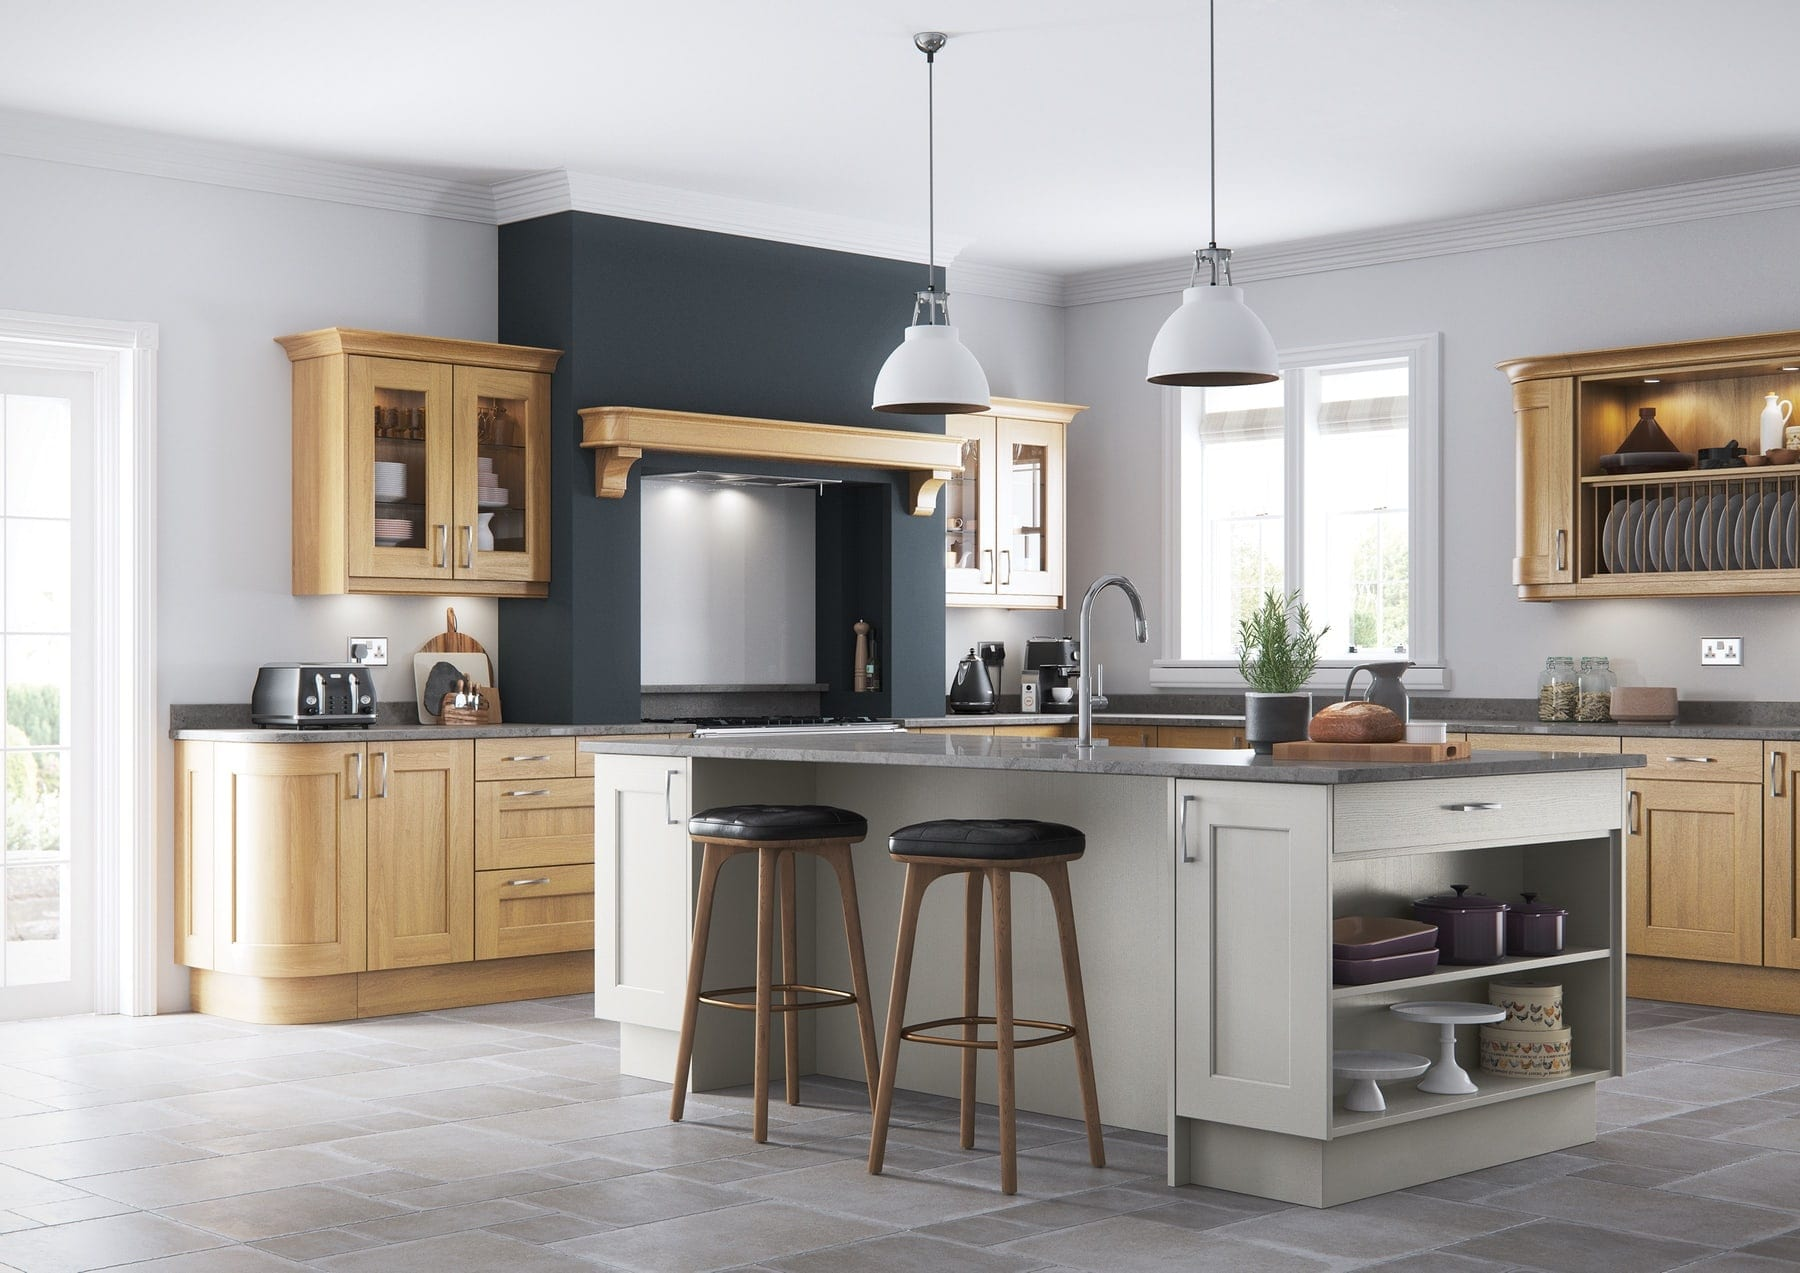 Wakefield Light Oak And Stone Shaker Kitchen With Island | Colour House Interiors, Caterham